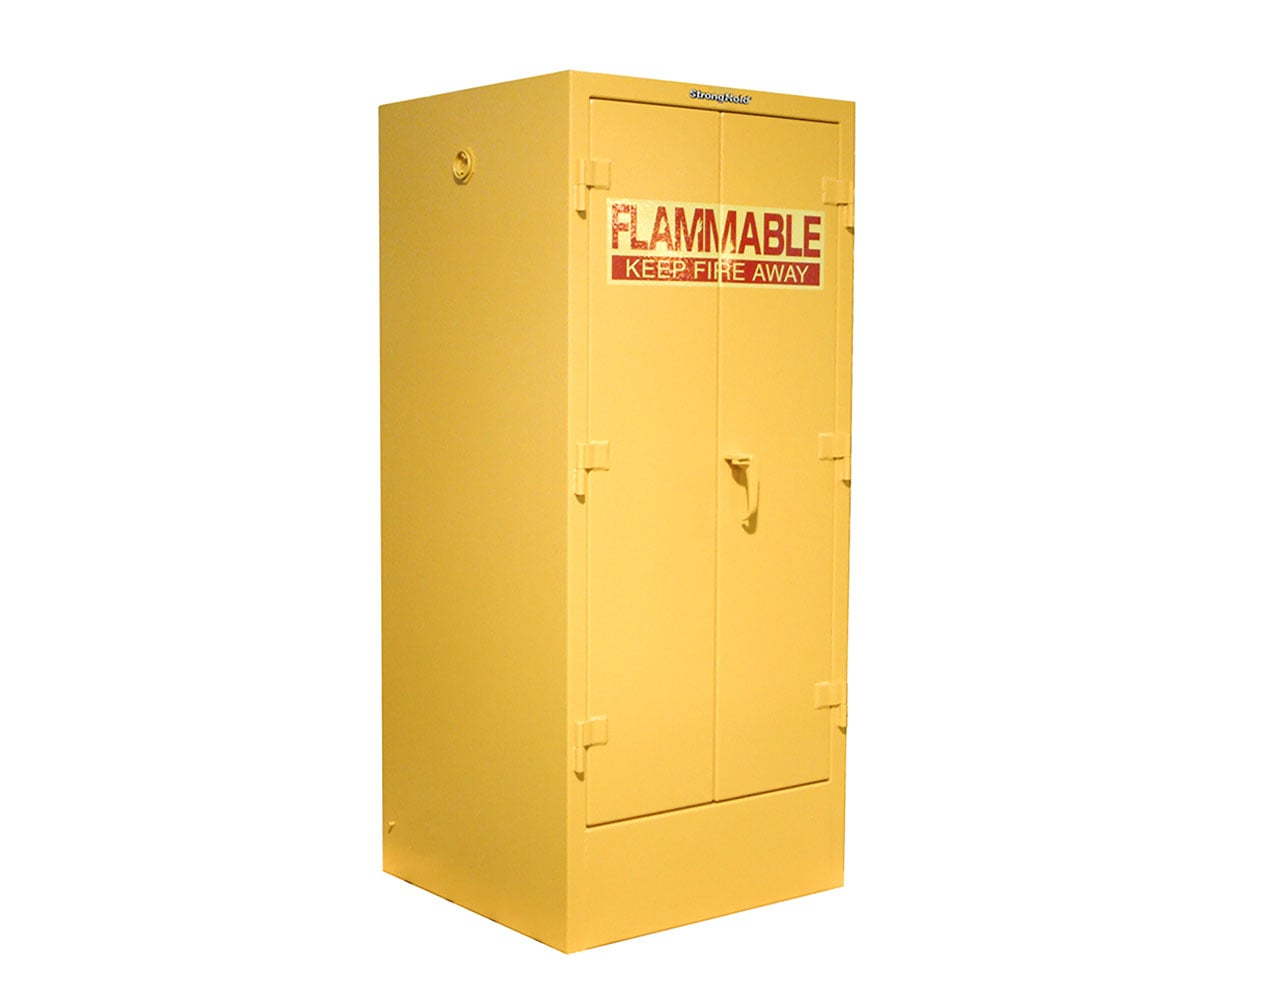 Extra Heavy Duty 12 GA 55 Gallon Double Drum Flammable Safety Cabinet with Manual-Closing Doors, 2 Shelves – 32 In. W x 30 In. D x 72 In. H